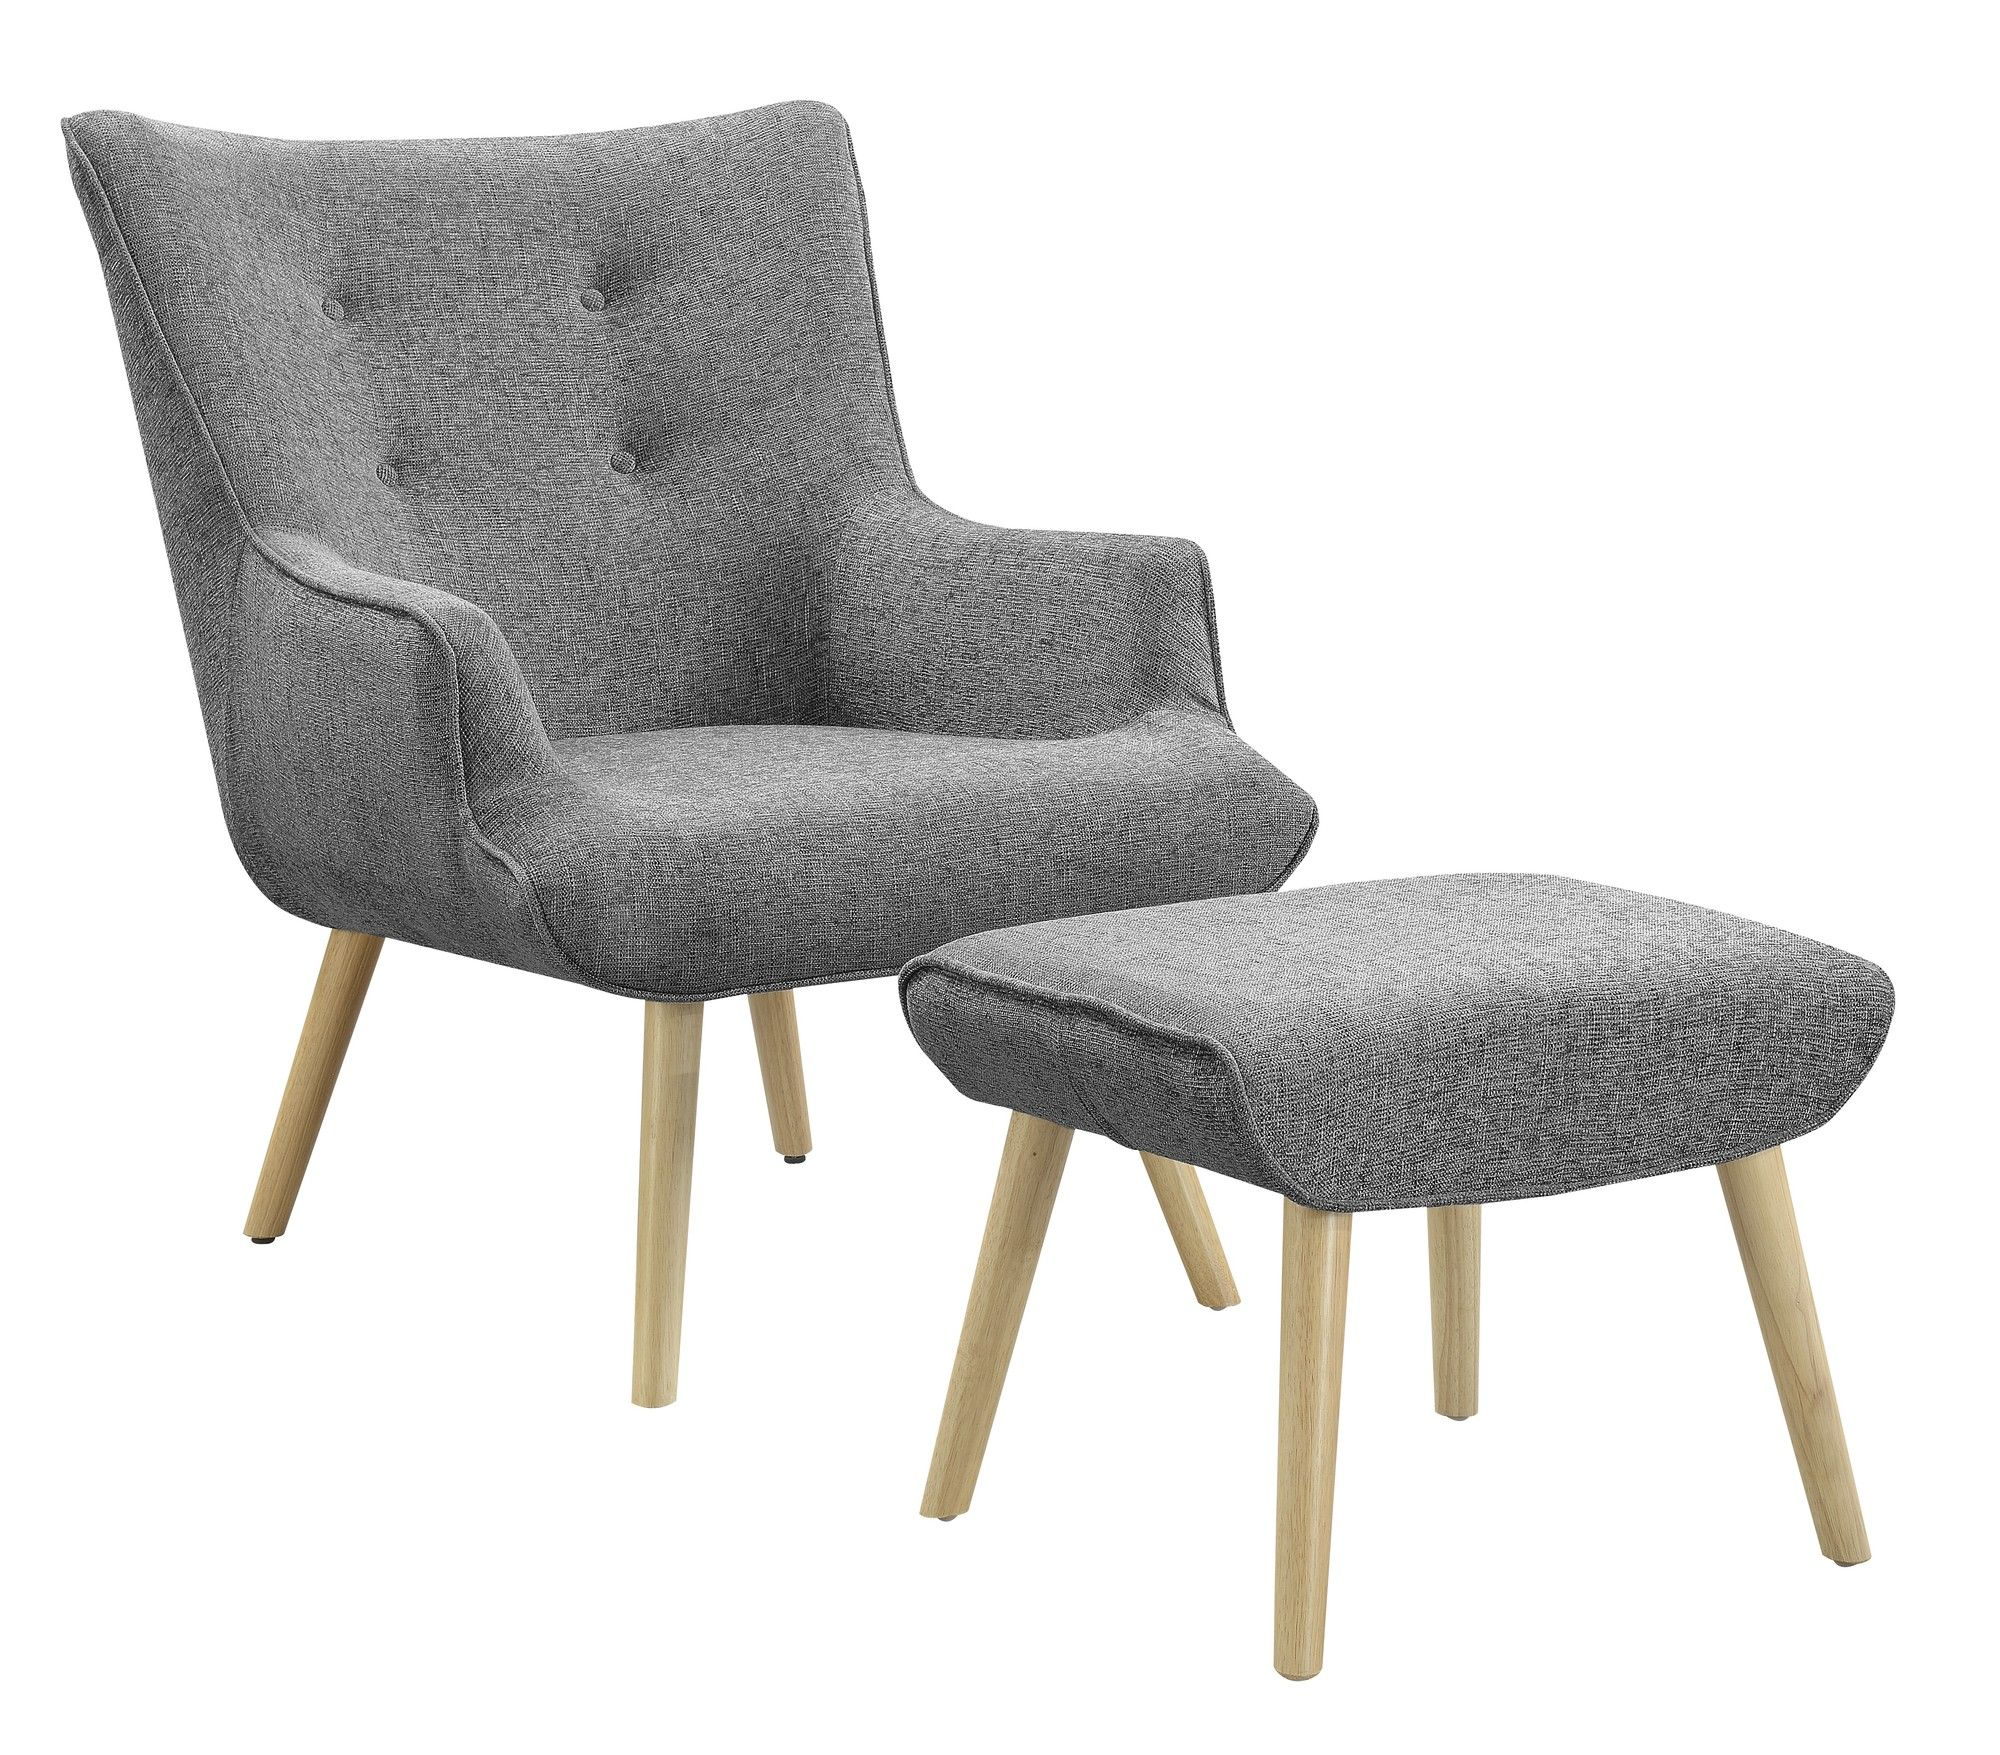 Miles Armchair & Ottoman Set | Armchairs, Living room chairs and ...